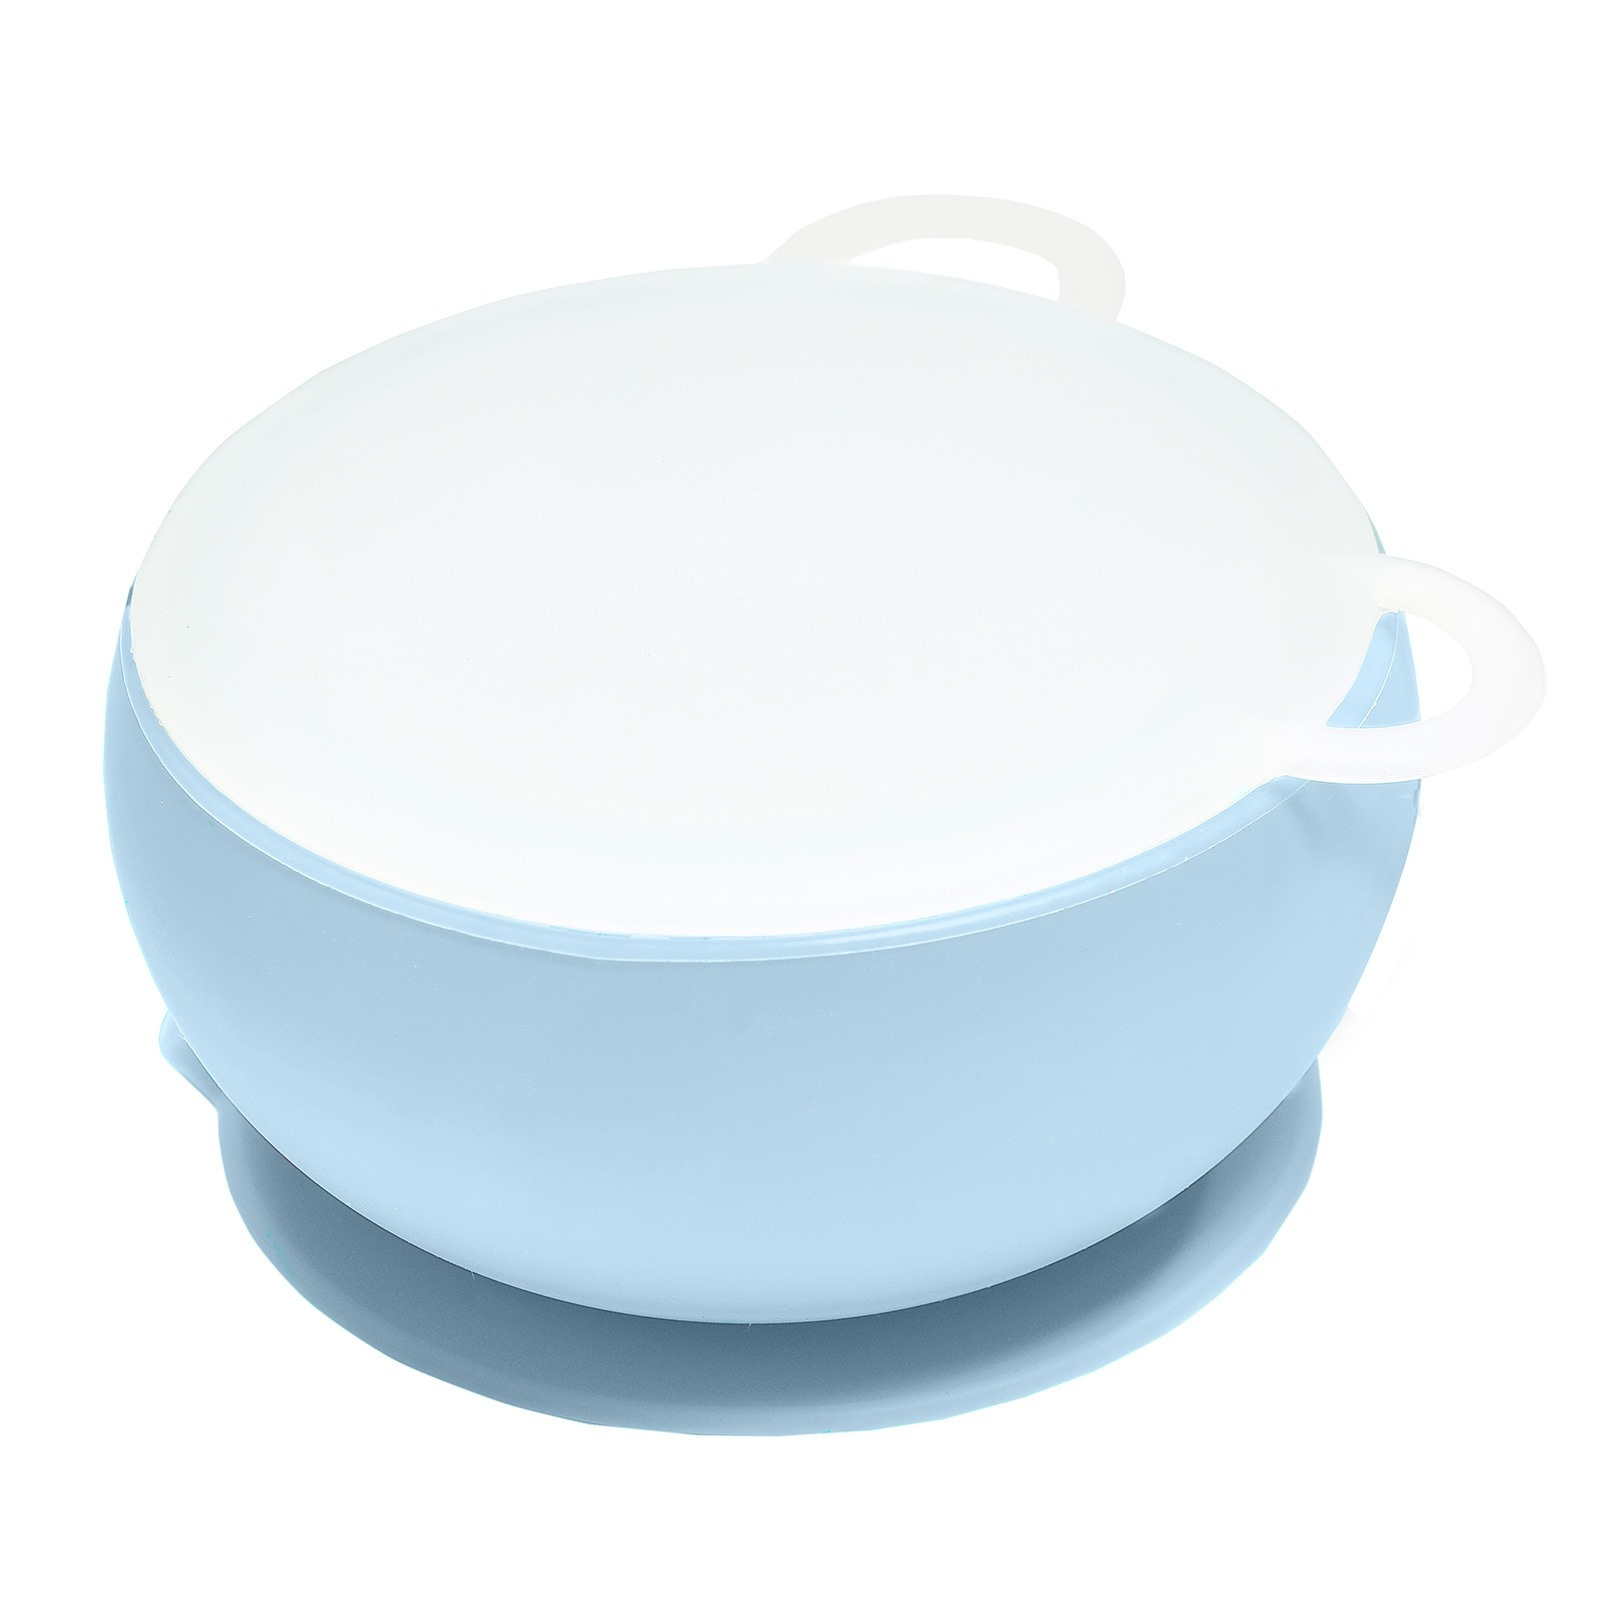 Ebebek Oioi Silicone Bowl With Lid - Blue